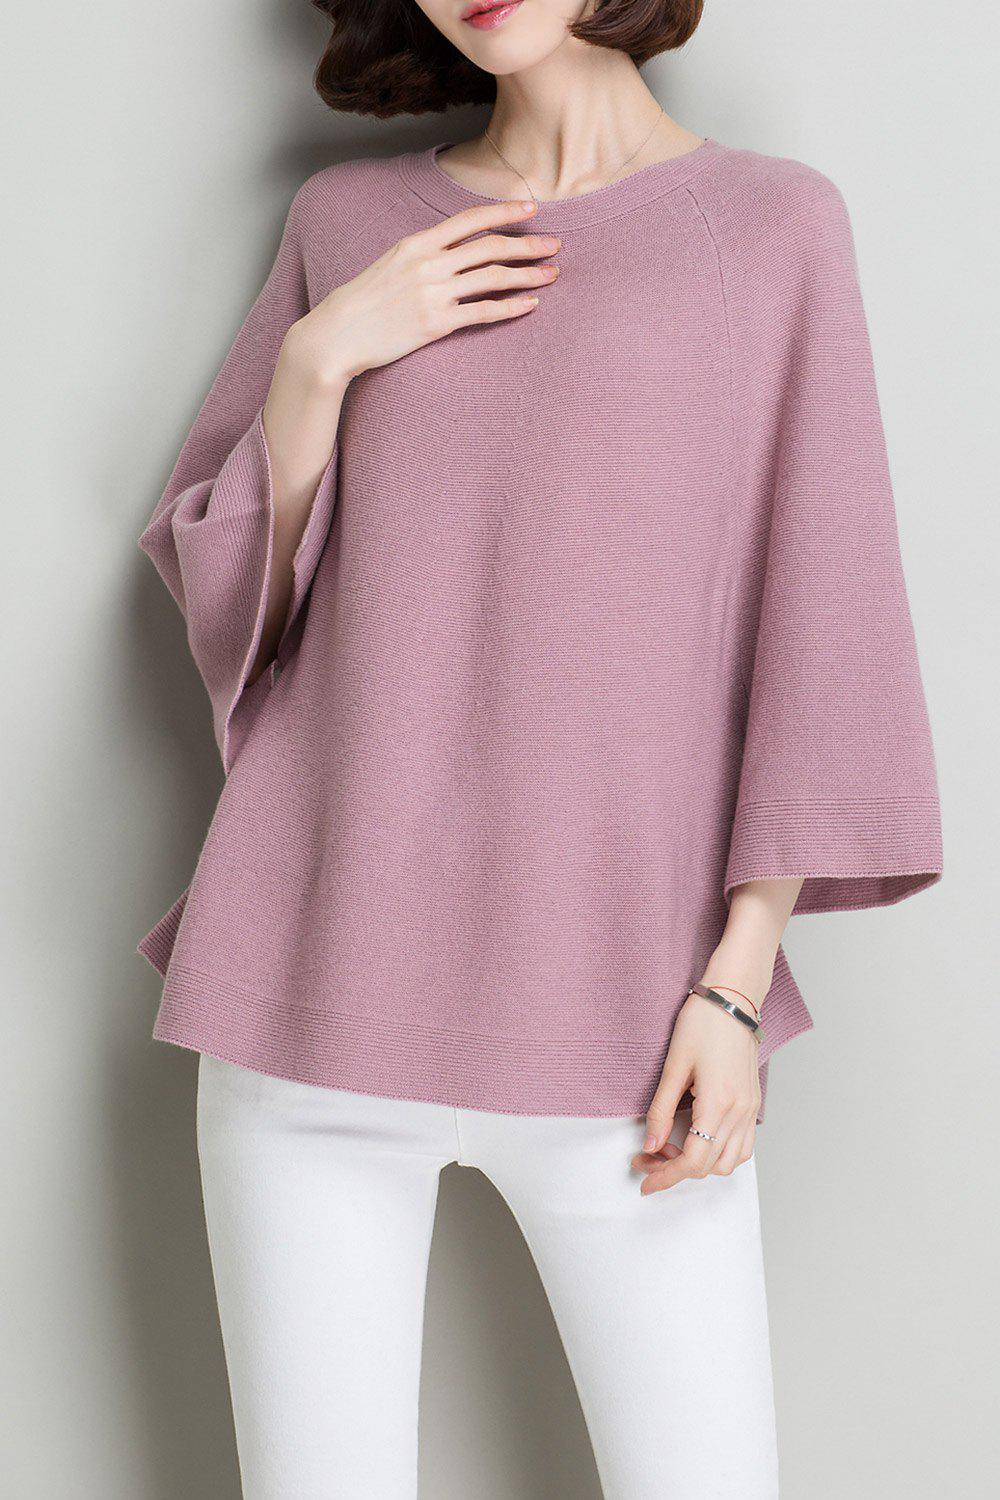 Flare Sleeve Wool Knit Sweater - PINK ONE SIZE